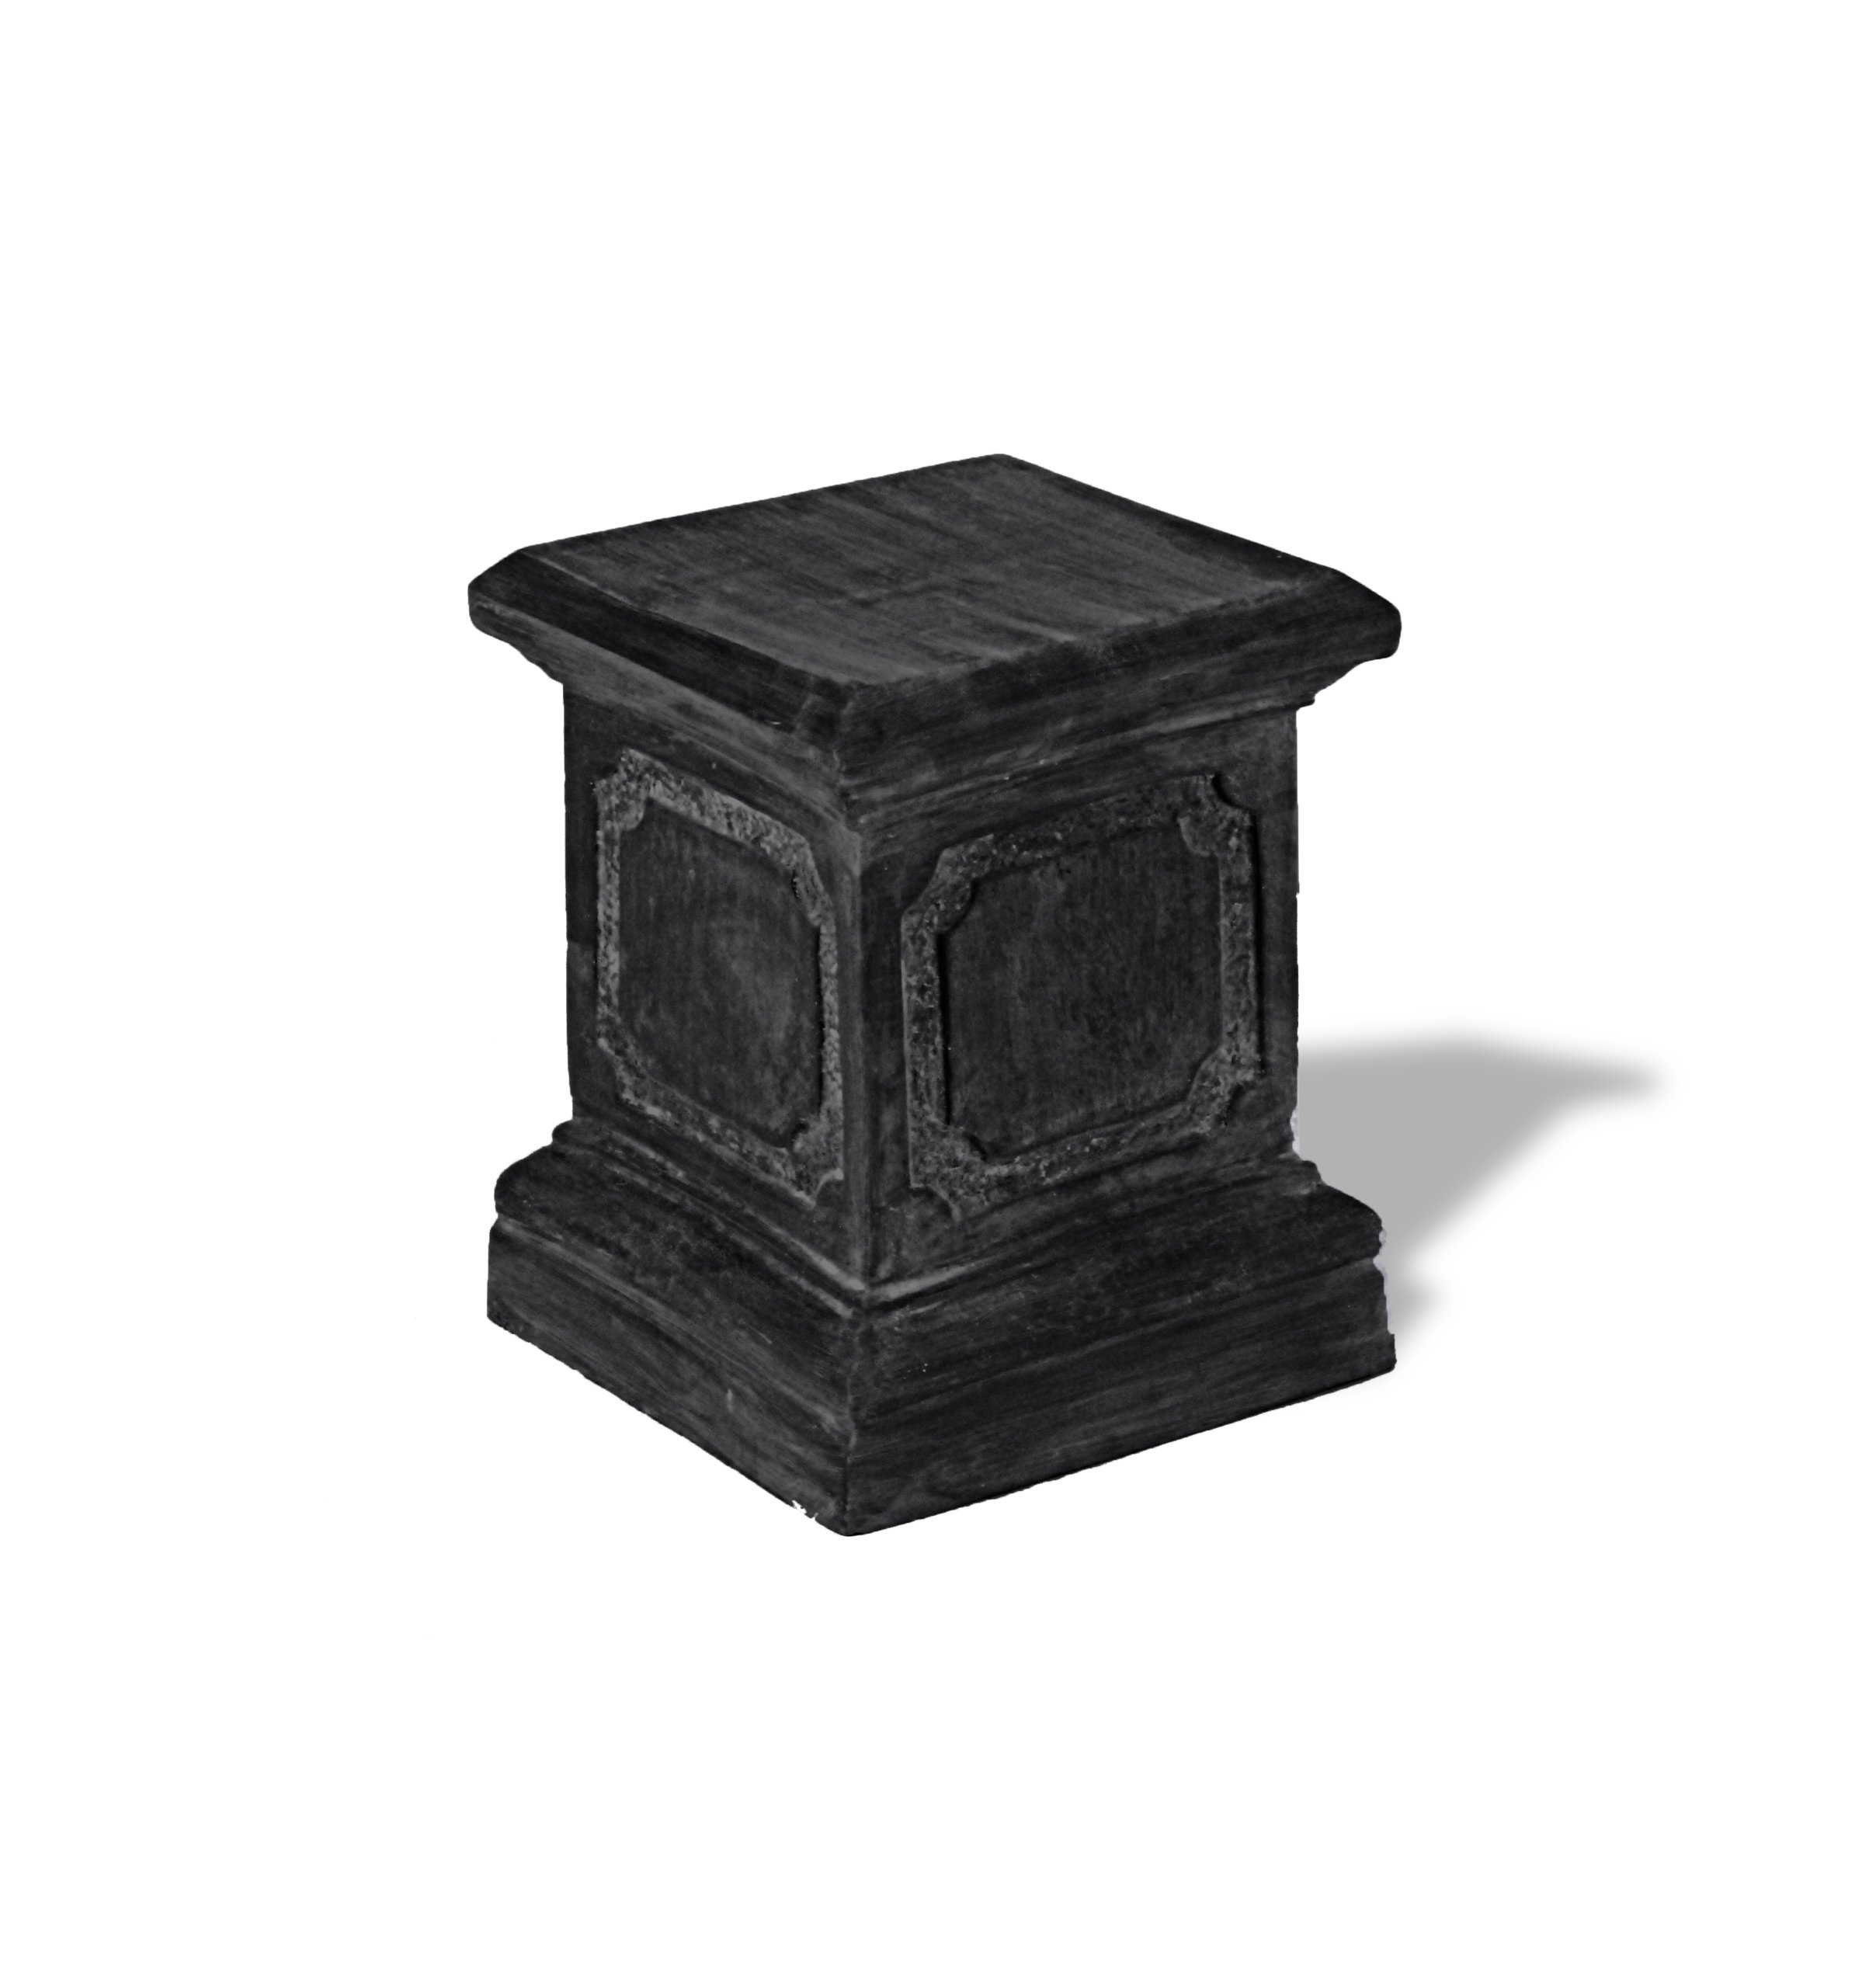 Amedeo Design ResinStone 1900-1C Paneled Pedestal, 15 by 15 by 20-Inch, Charcoal